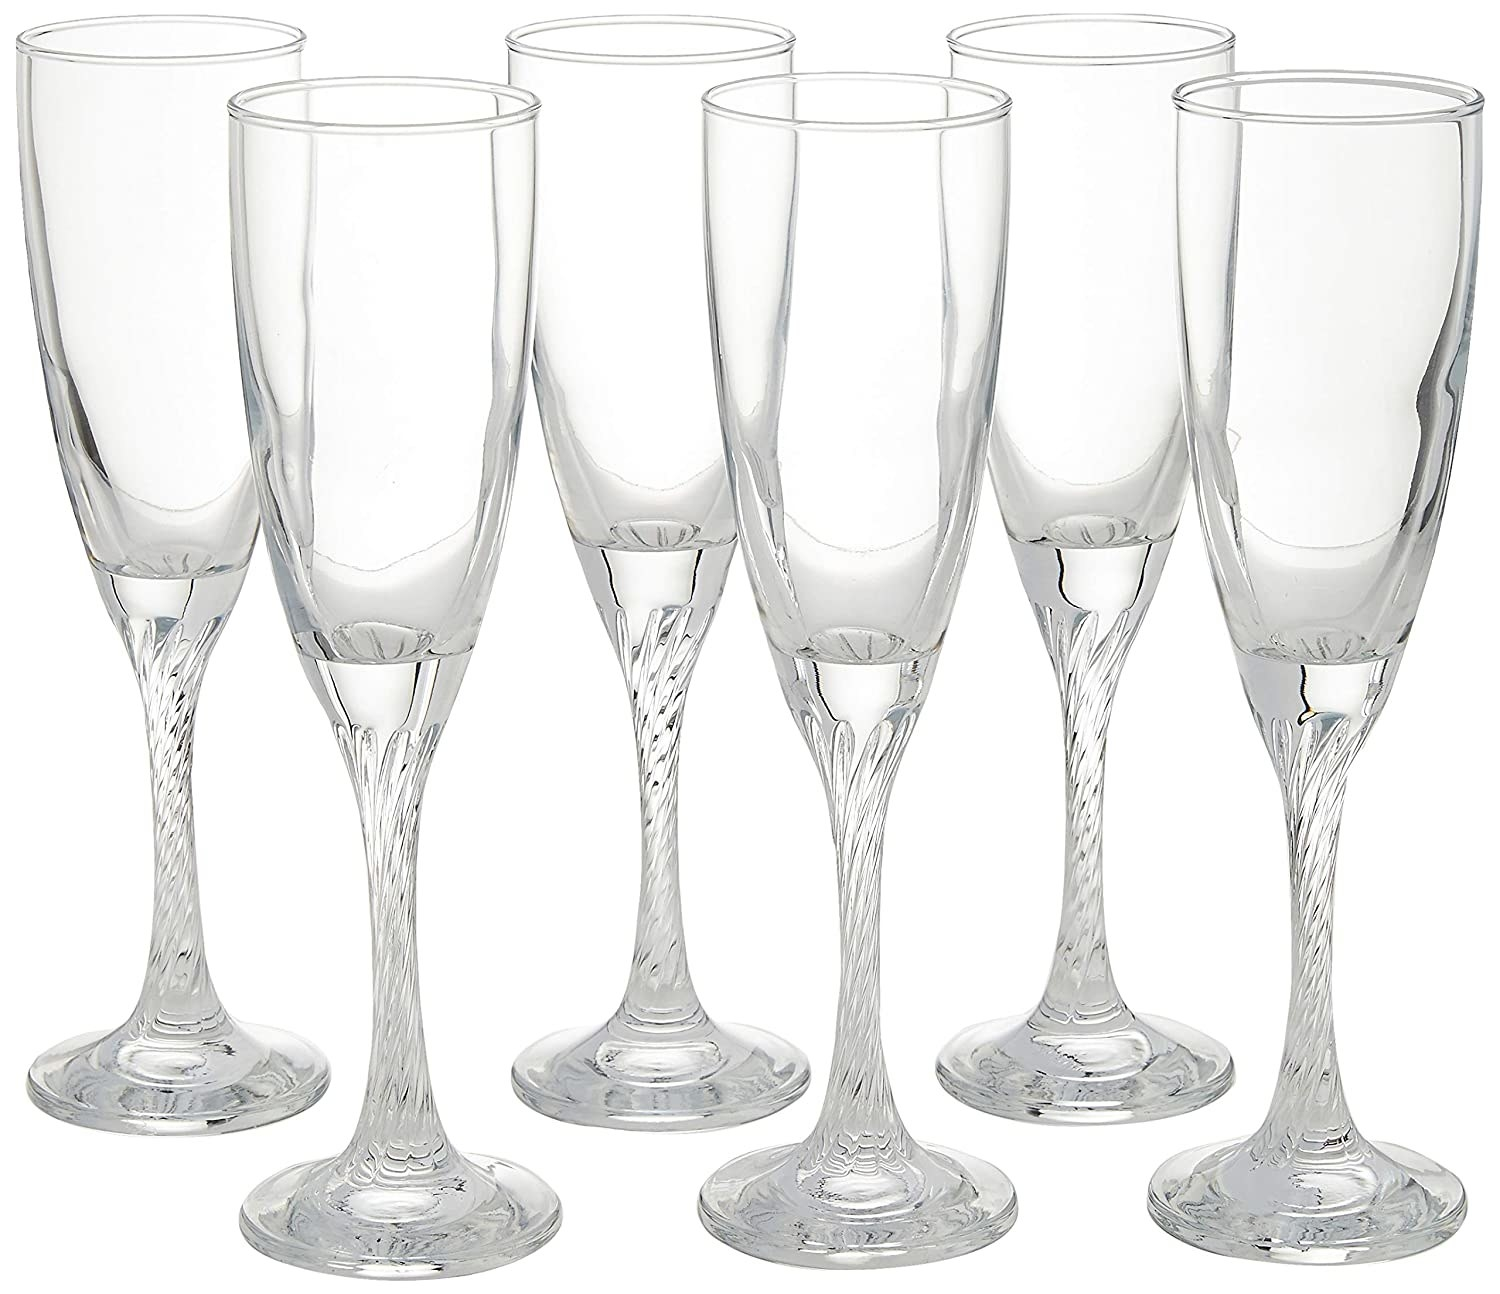 A set of champagne flute glasses